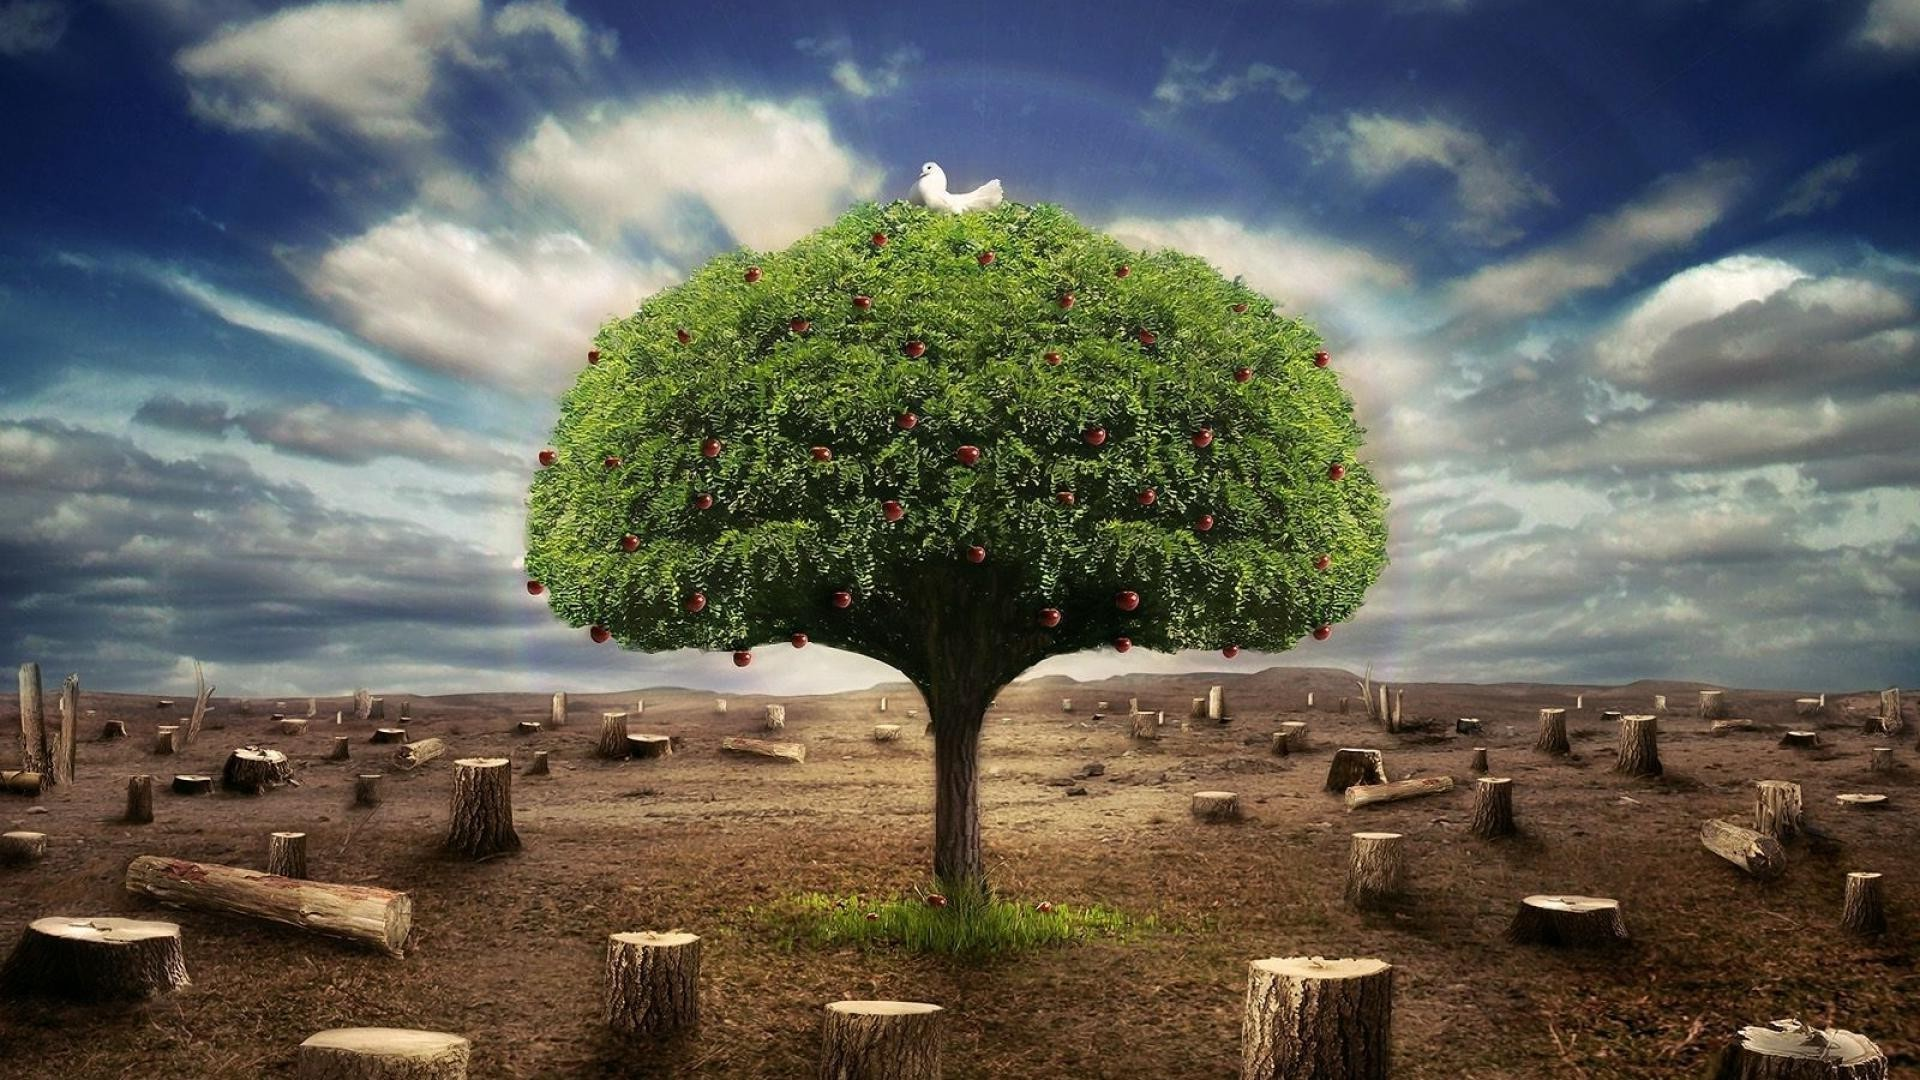 The Only Fruit Tree In The Garden Of Eden Free Wallpapers